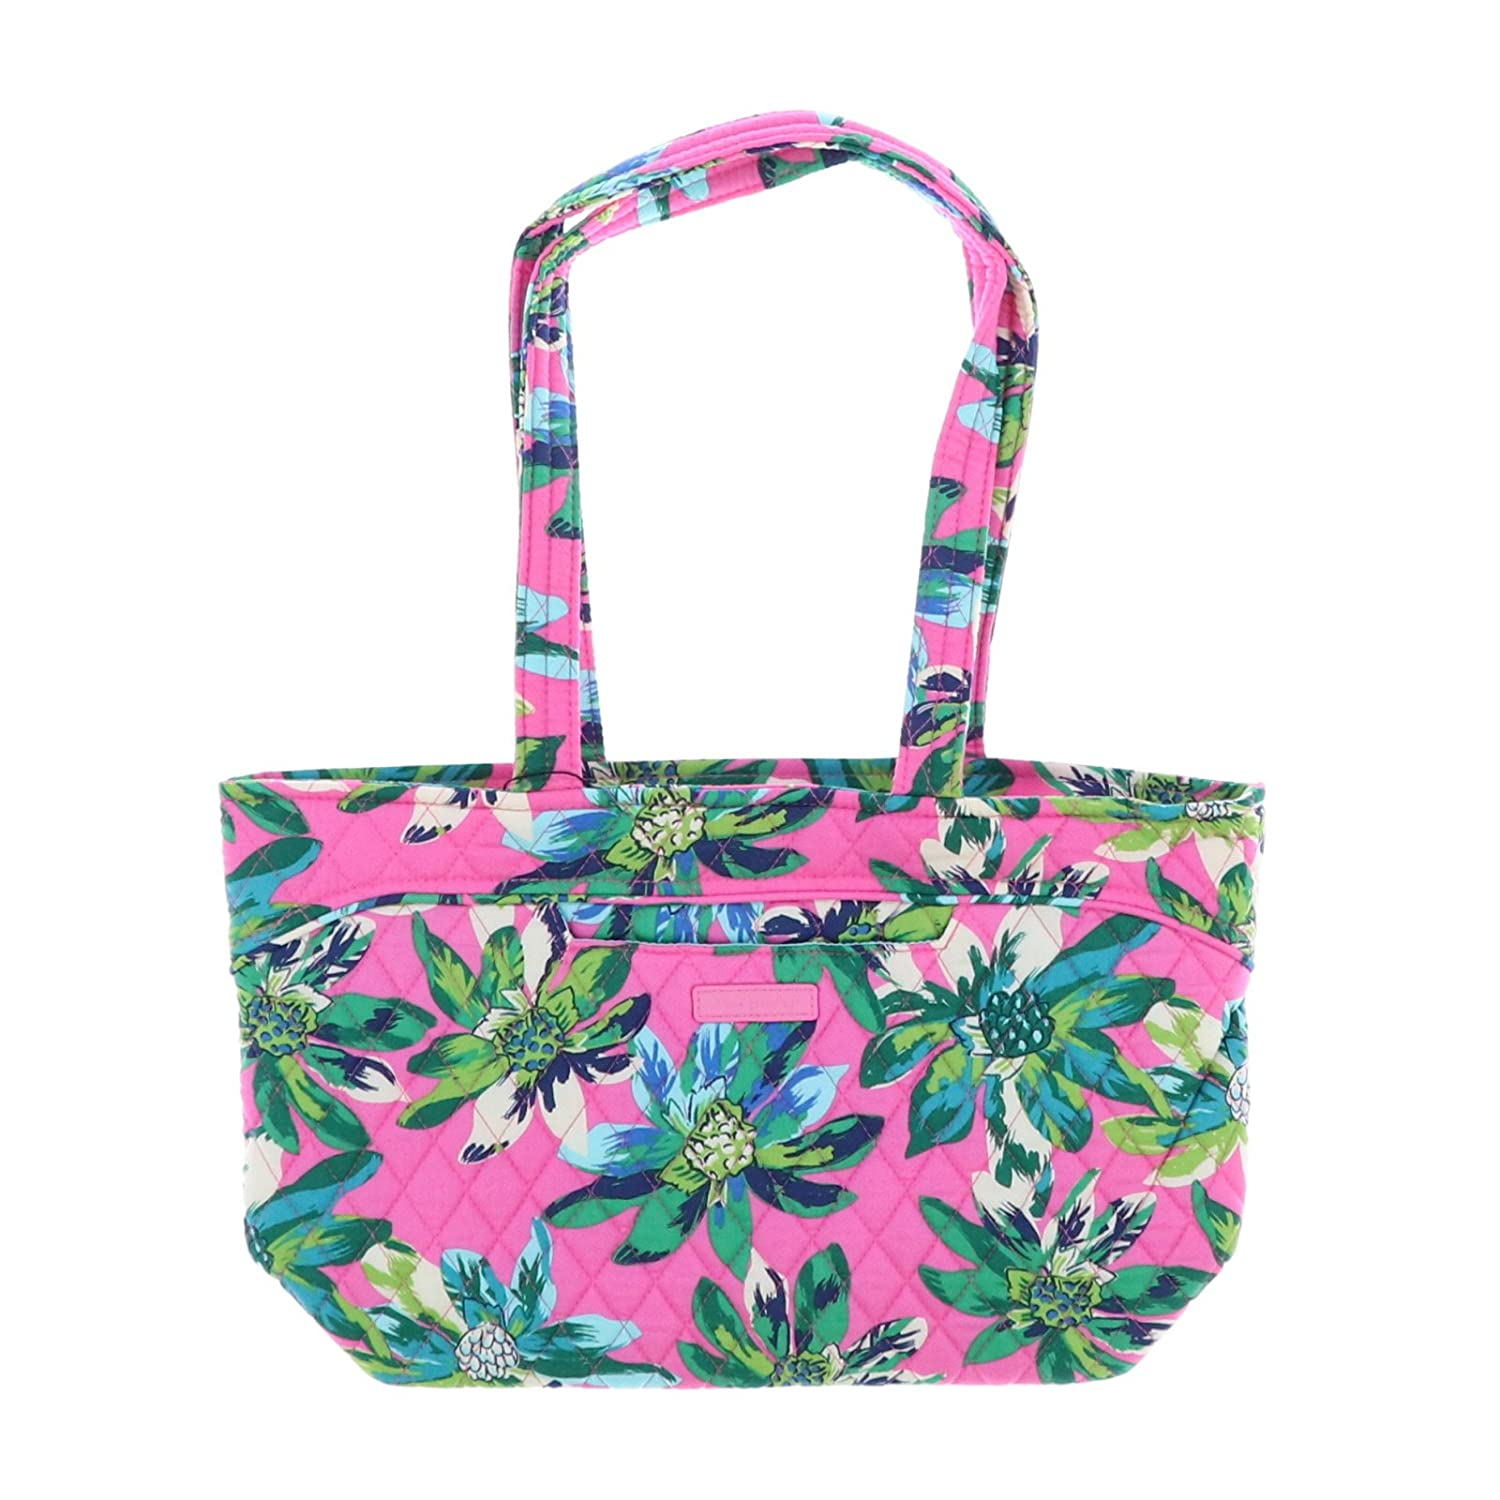 当季大流行 Vera Bradley B07BTRFBCC Mandyトートバッグ Tropical B07BTRFBCC Tropical Paradise Vera Tropical Paradise, ベクトルプラス:77ea84e4 --- vezam.lt